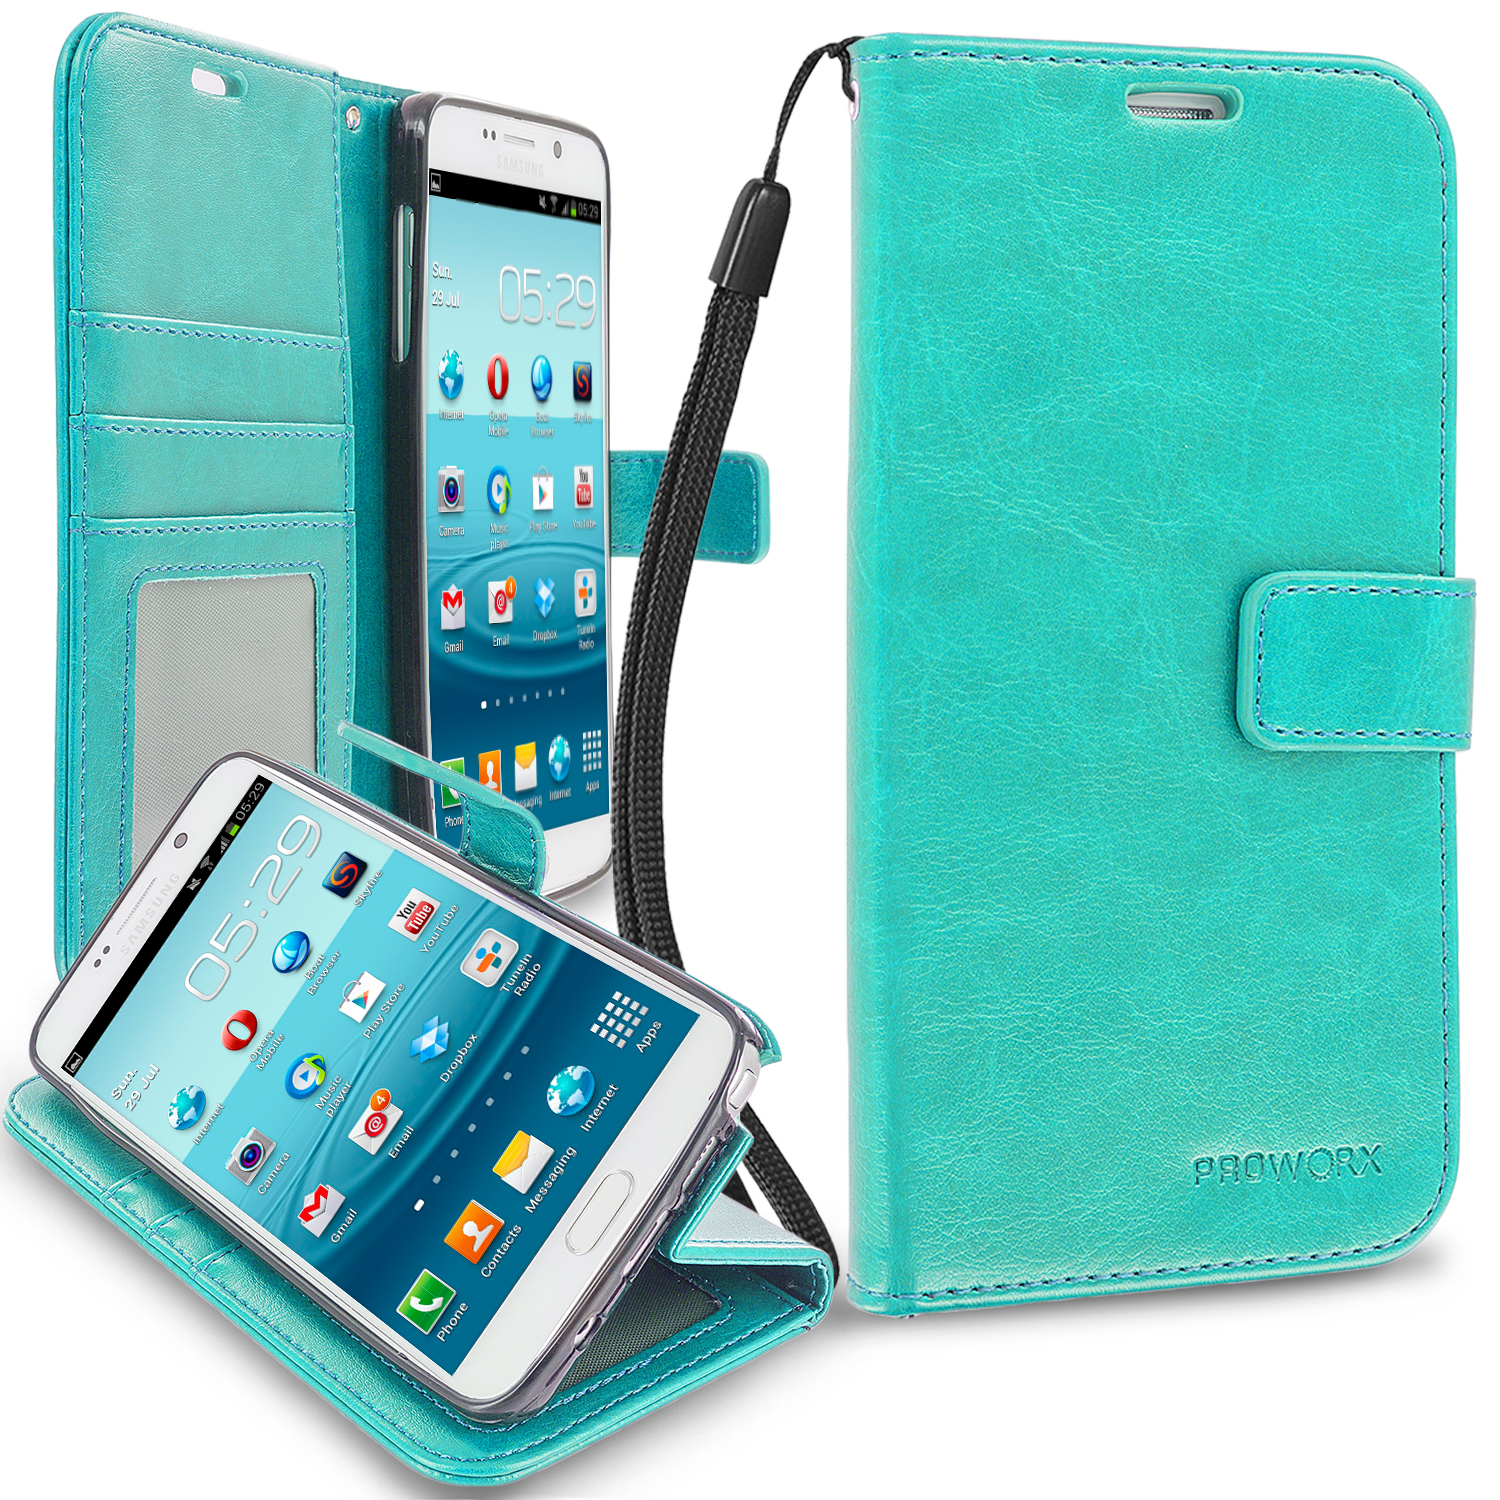 Samsung Galaxy Note 5 Mint Green ProWorx Wallet Case Luxury PU Leather Case Cover With Card Slots & Stand